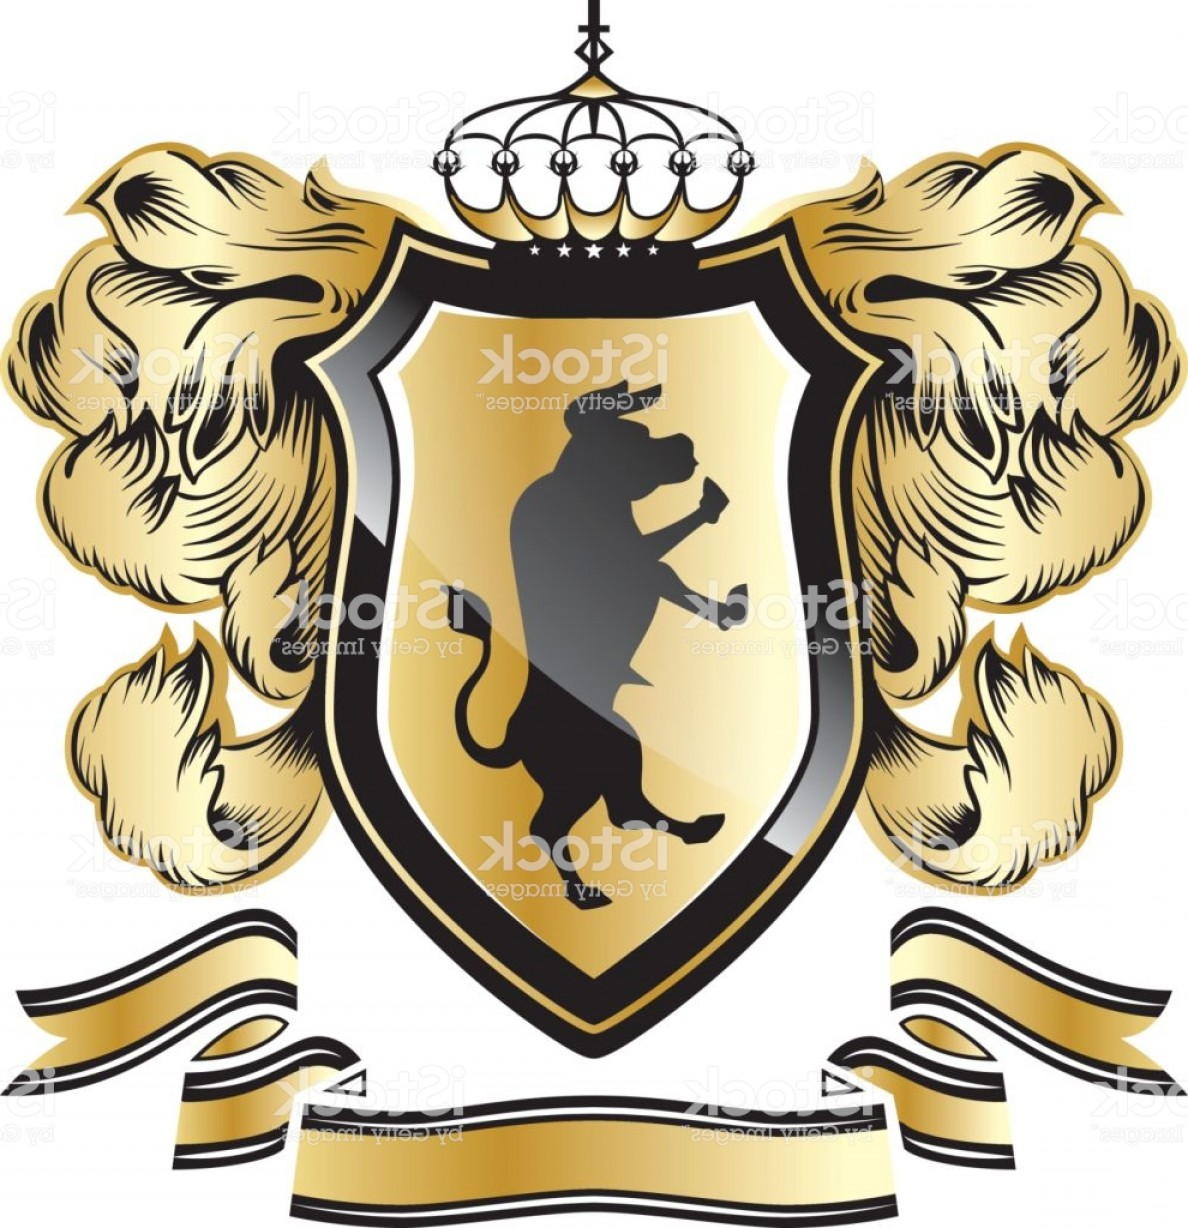 Crest And Coat Of Arms Vector Silhouette: Royal Crest Coat Arms Heraldry Shield Symbol Silhouette Power Logo Gm